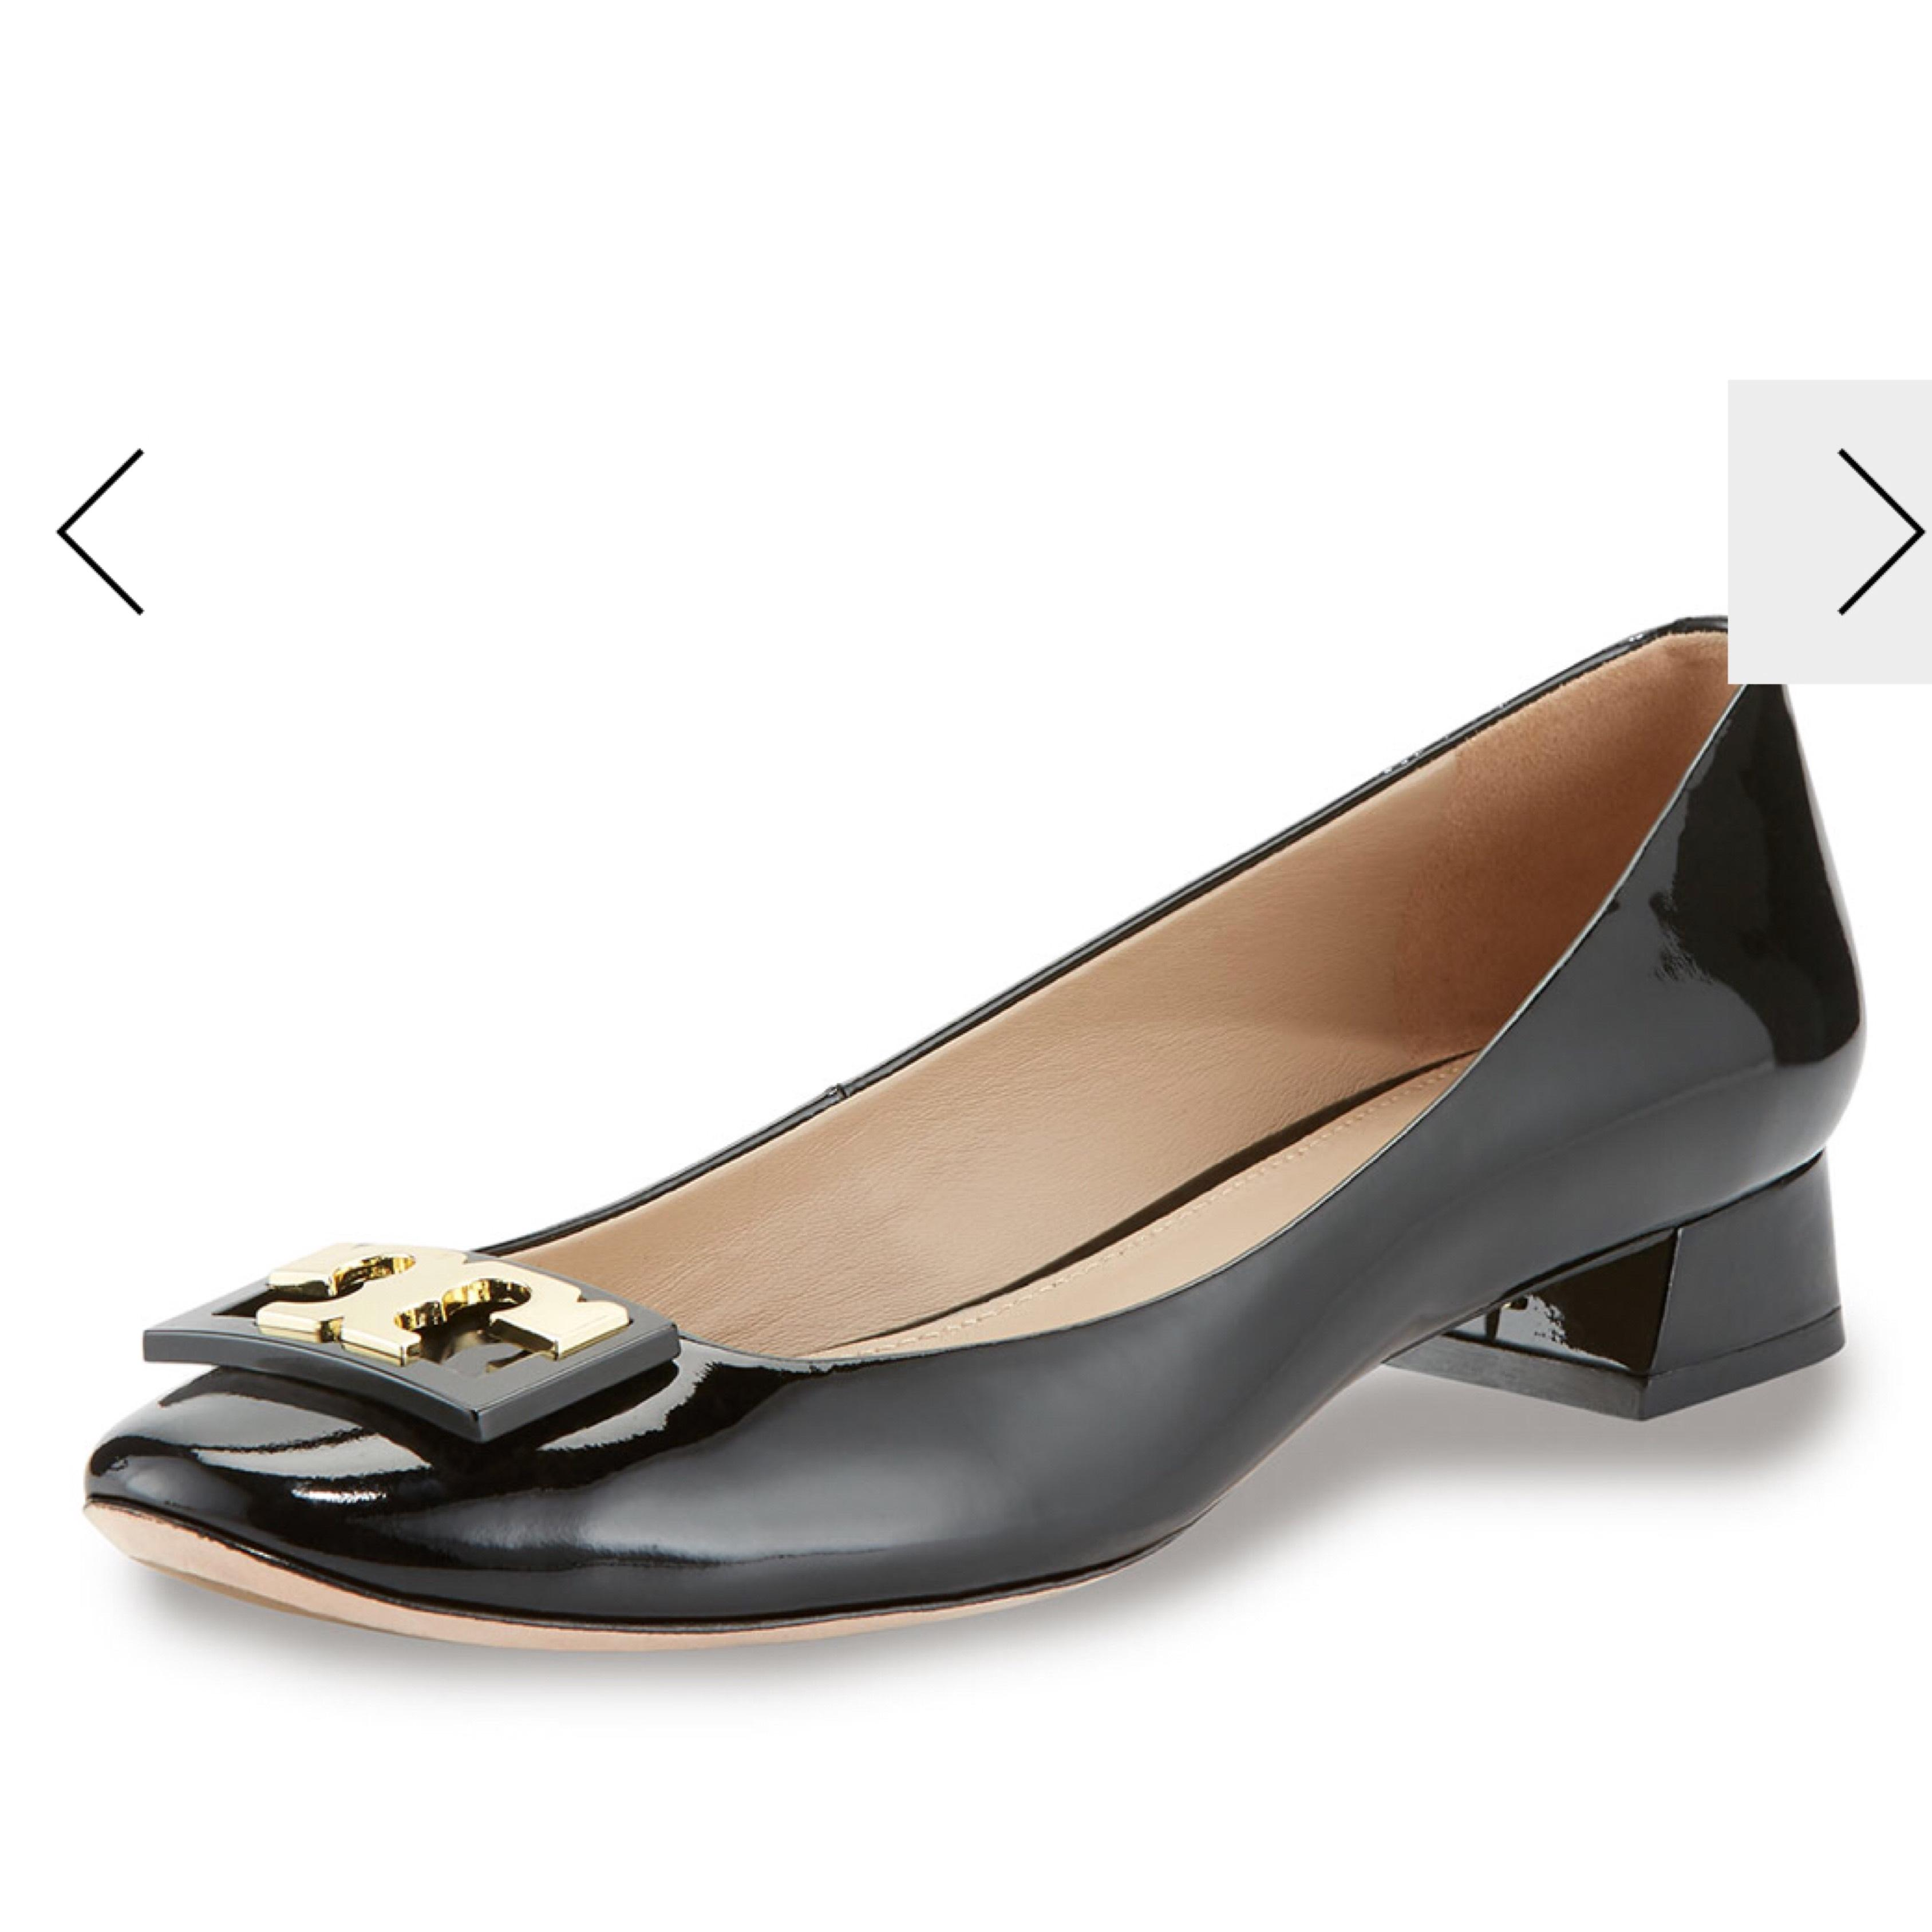 Tory Burch Black Pumps ...